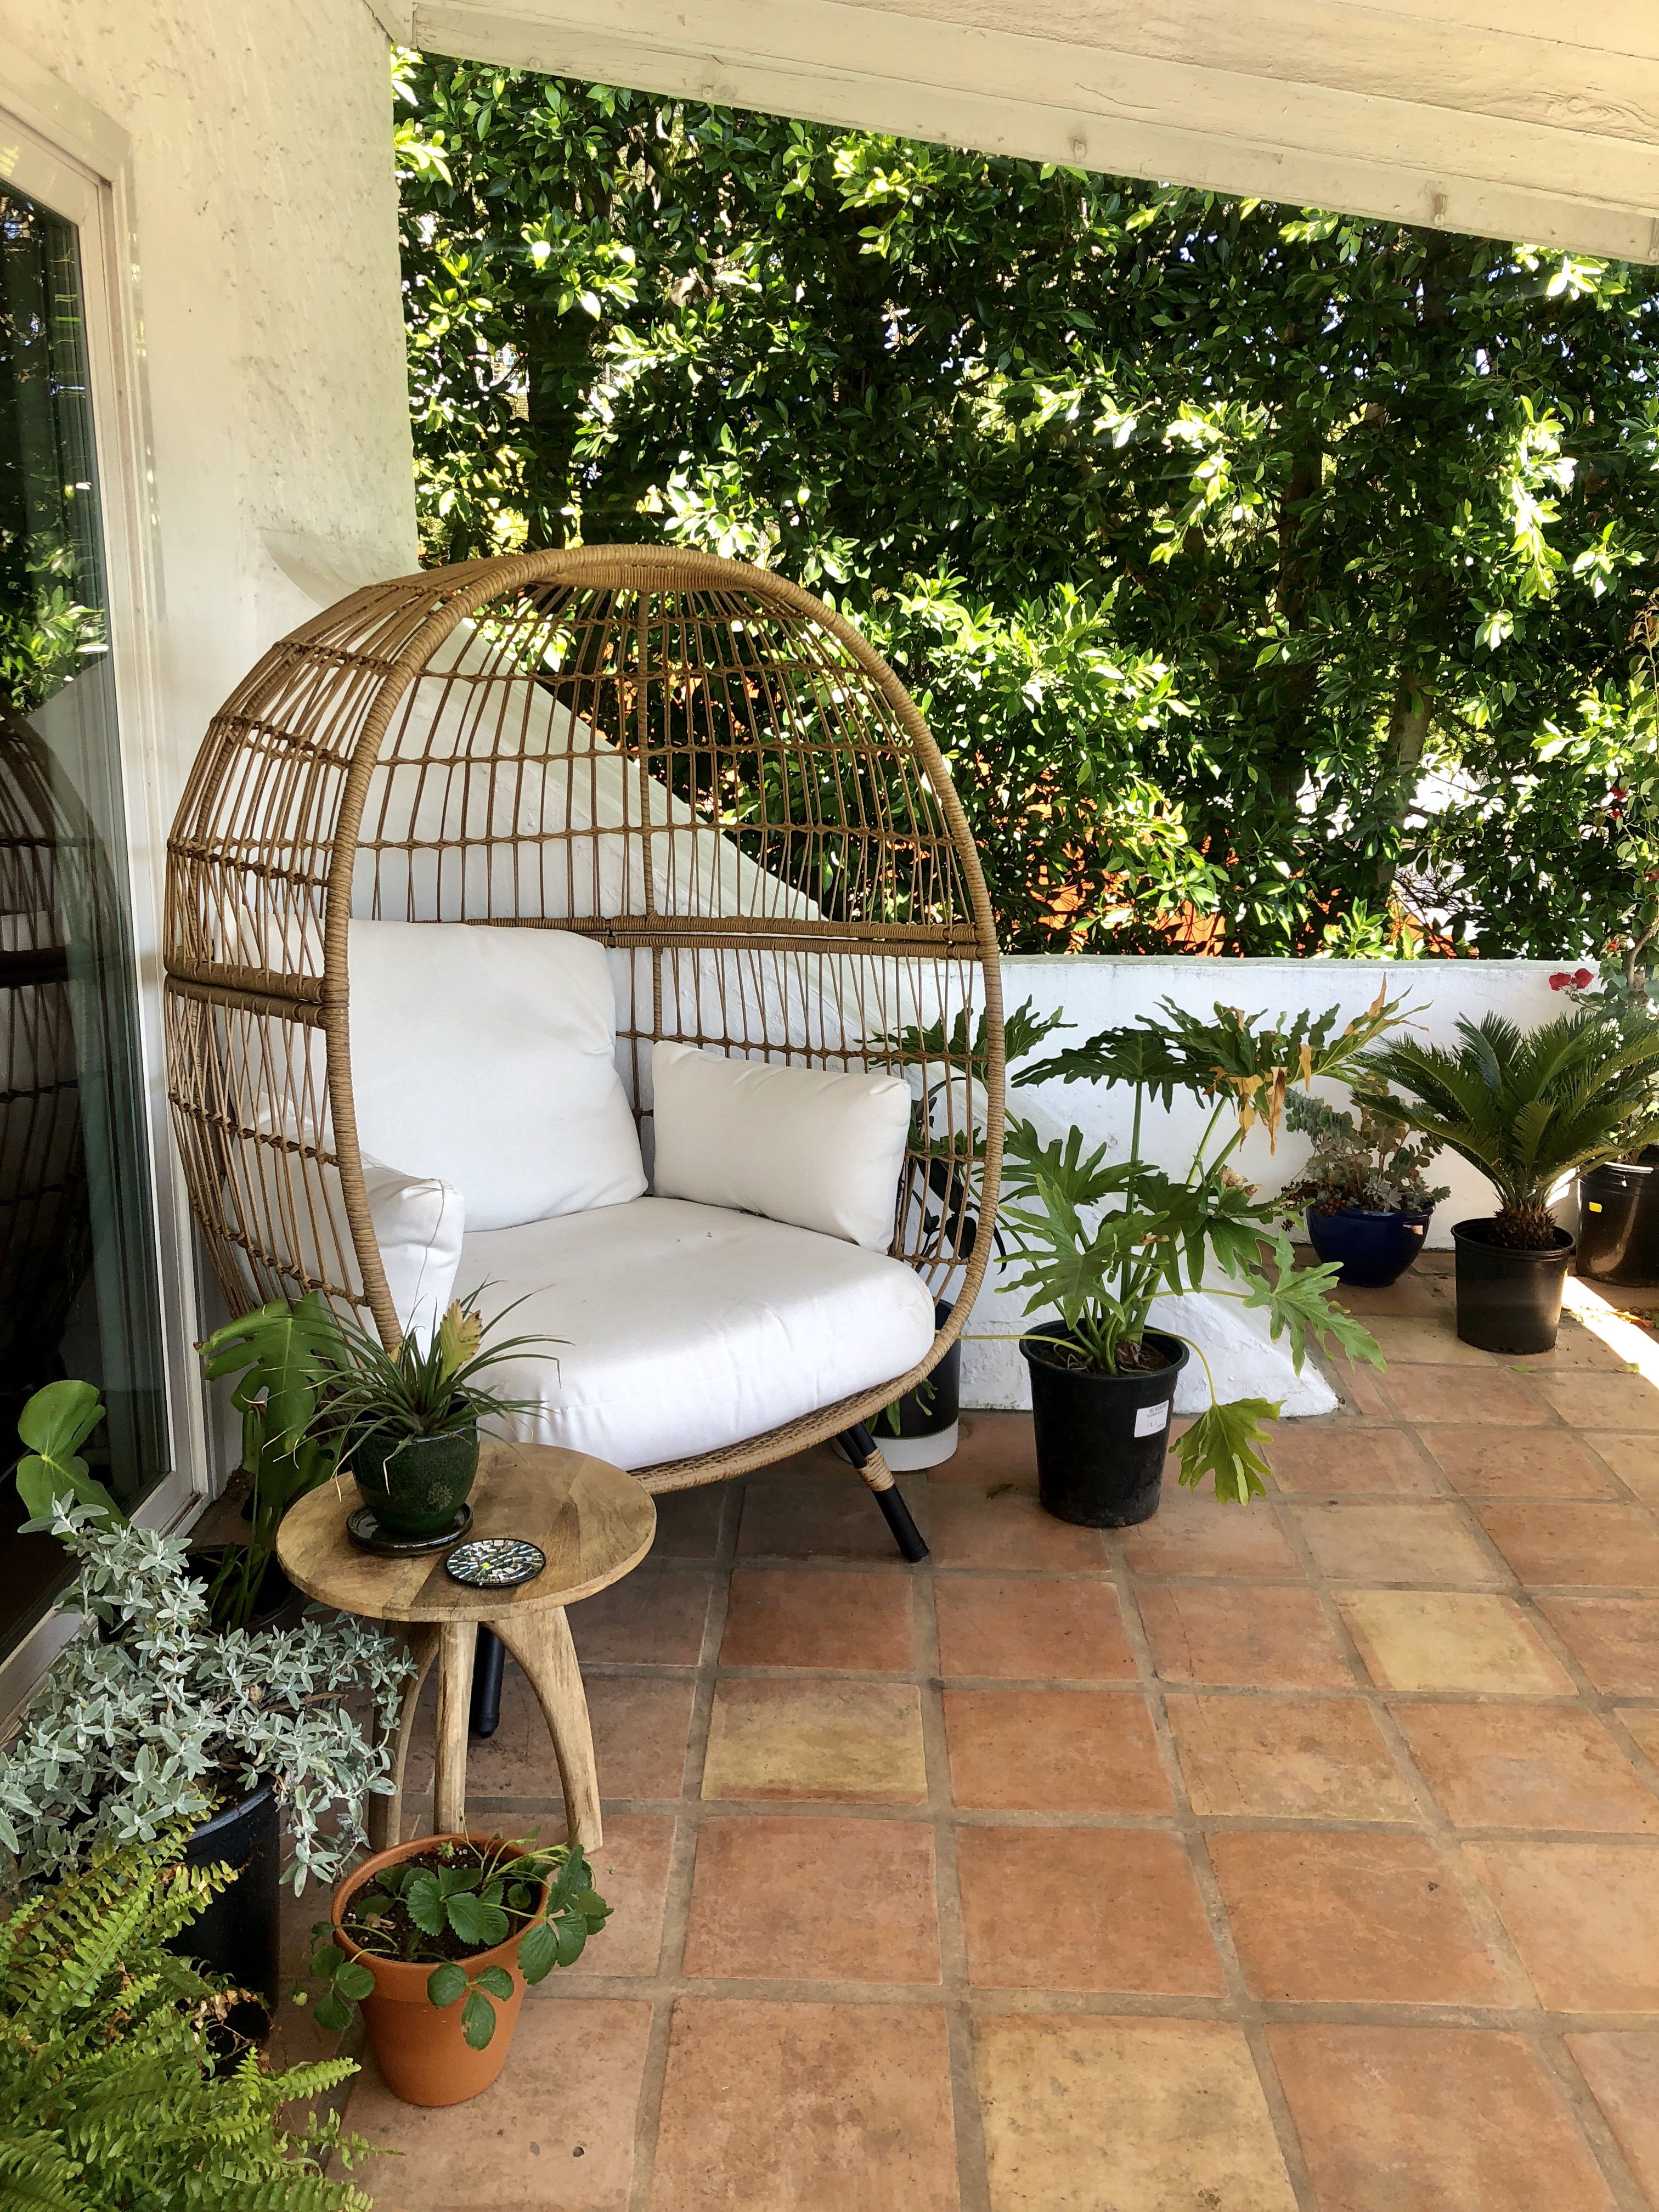 Target opalhouse egg chair in our jungle balcony target